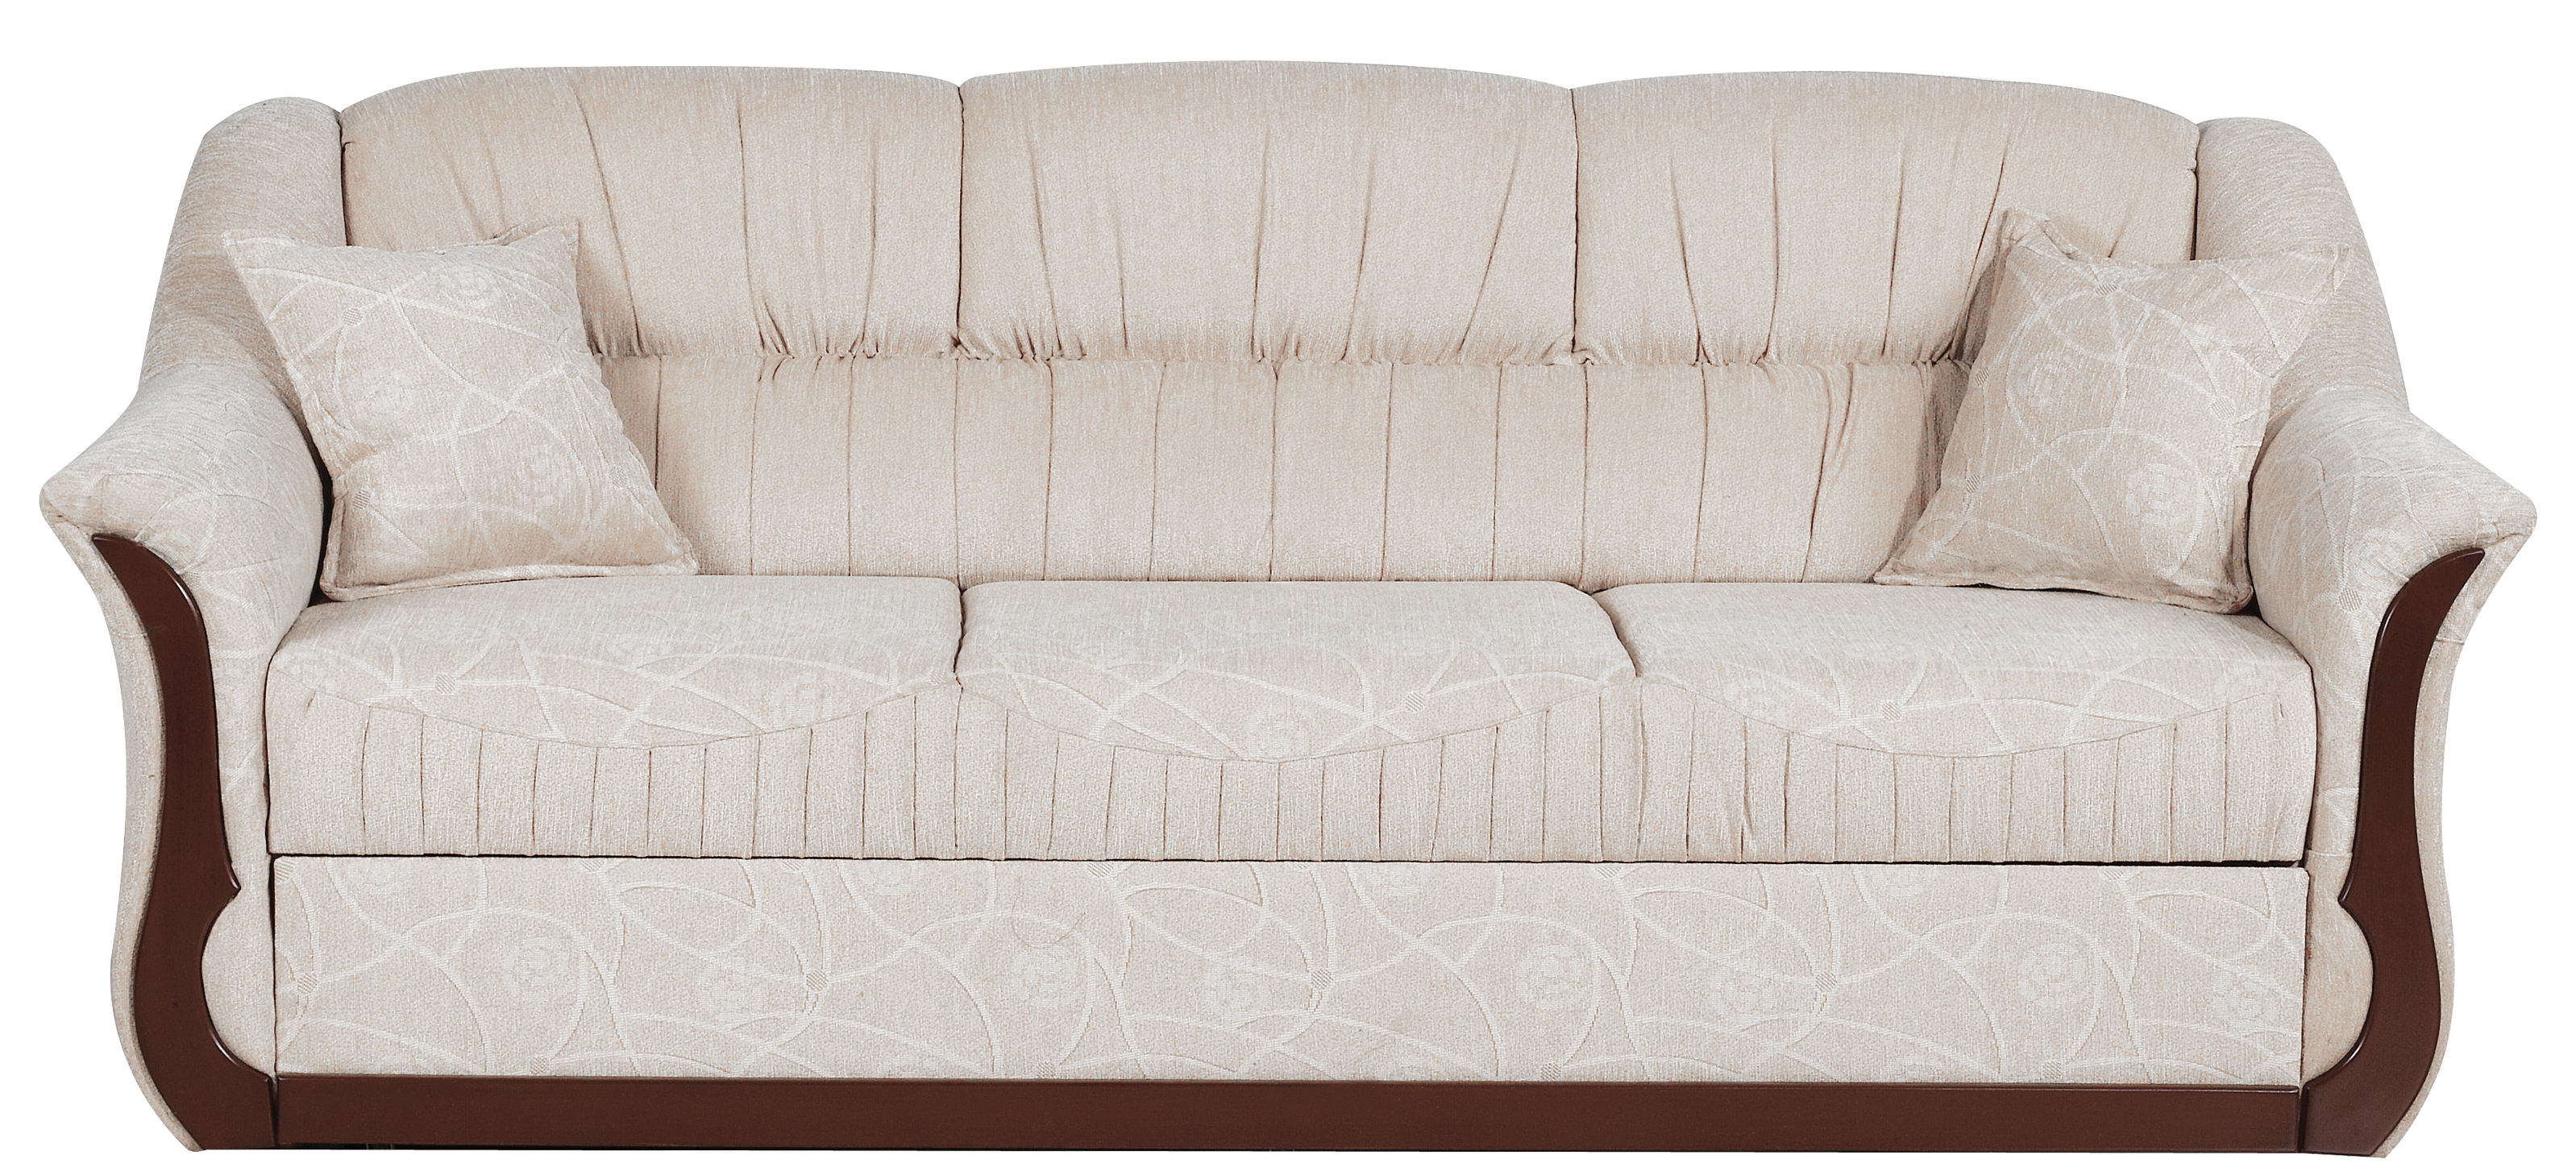 Transparent gream png picture. Couch clipart beige